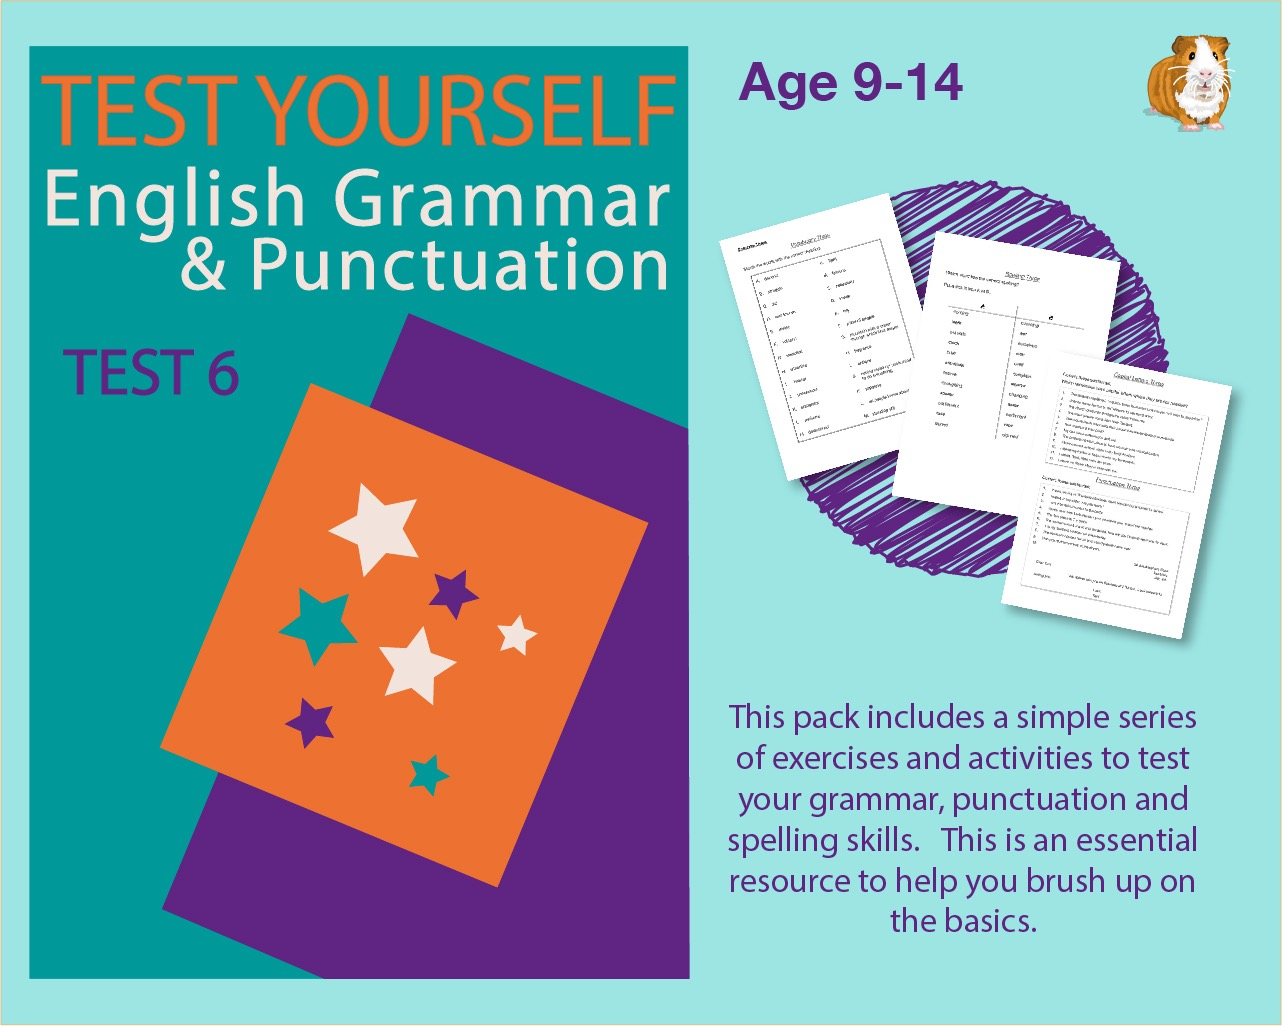 Assessment Test 6  (Test Your English Grammar And Punctuation Skills) 9-14 years